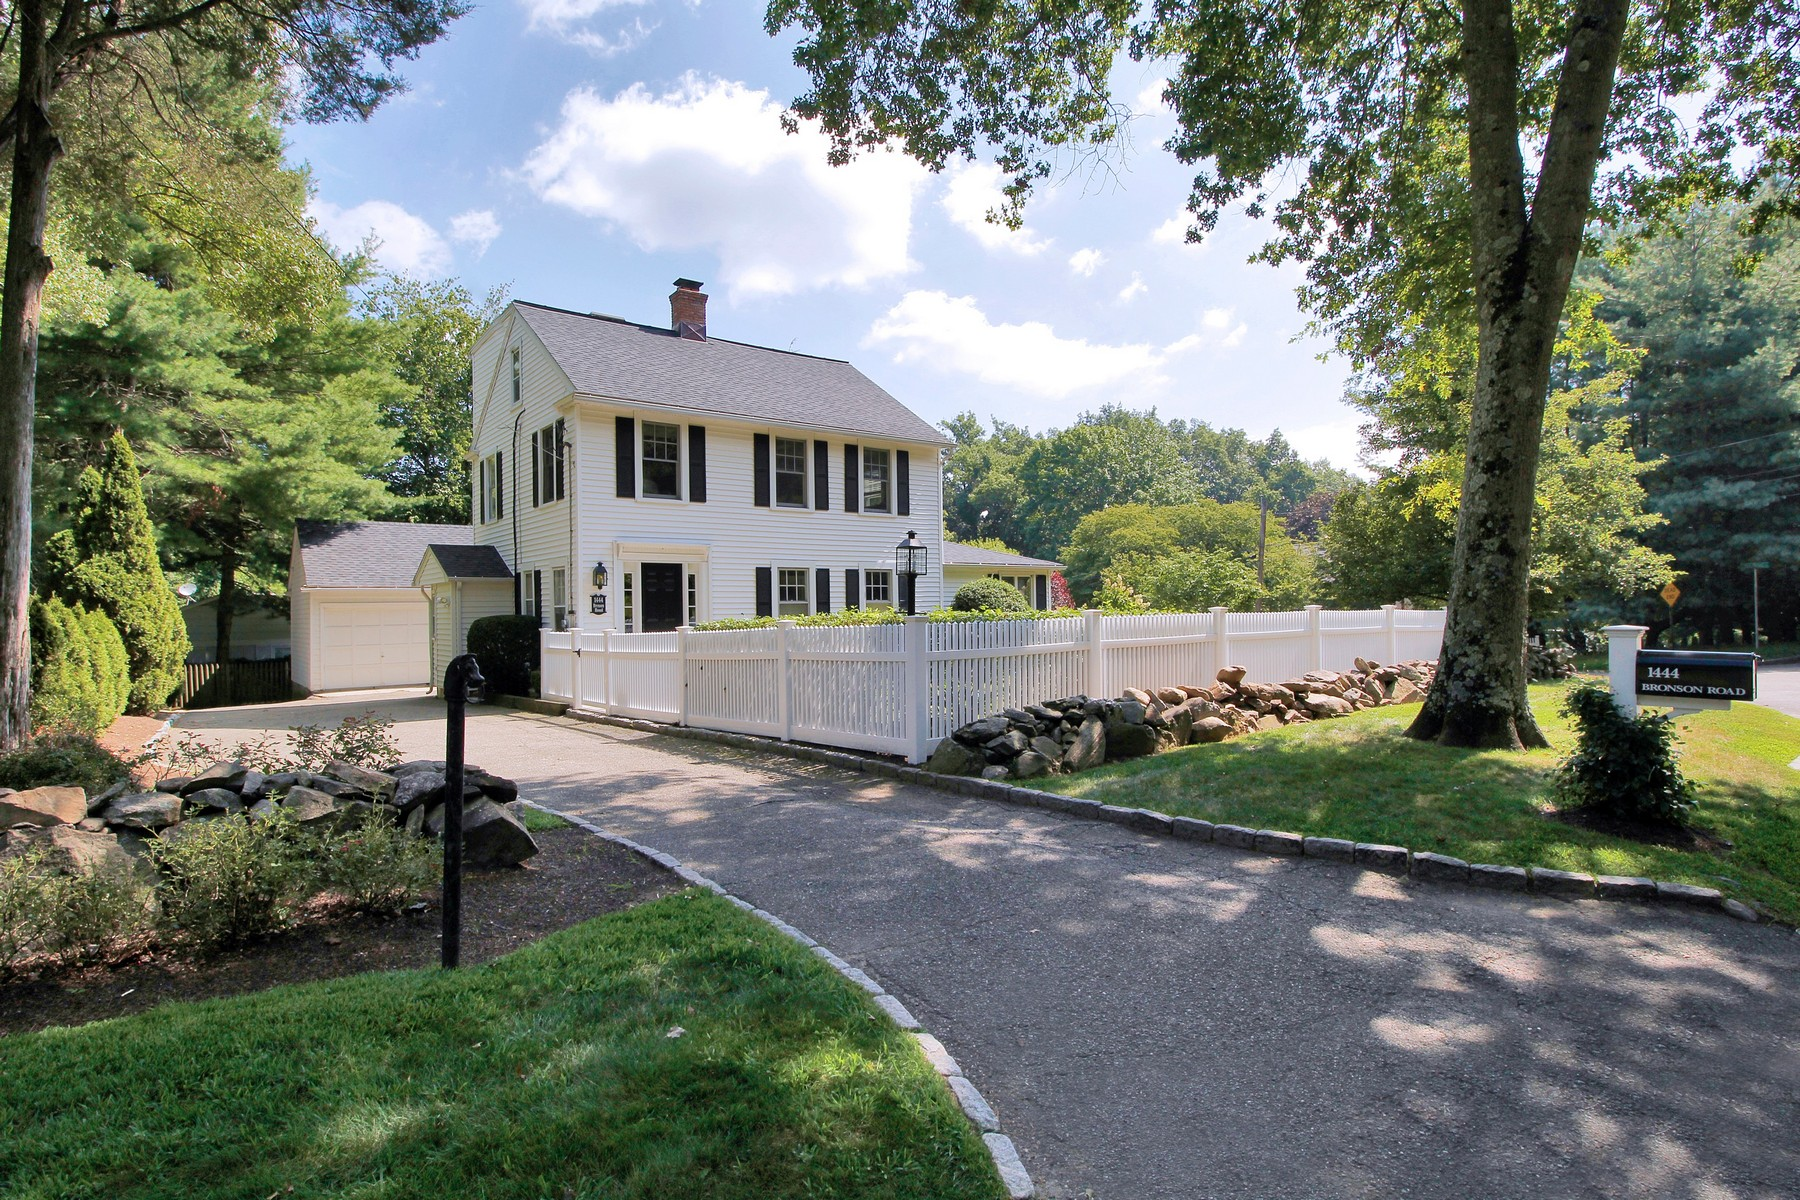 Single Family Home for Sale at Fabulous, Fully Renovated Four Bedroom Colonial in Desirable Greenfield Hill 1444 Bronson Road Fairfield, Connecticut, 06824 United States